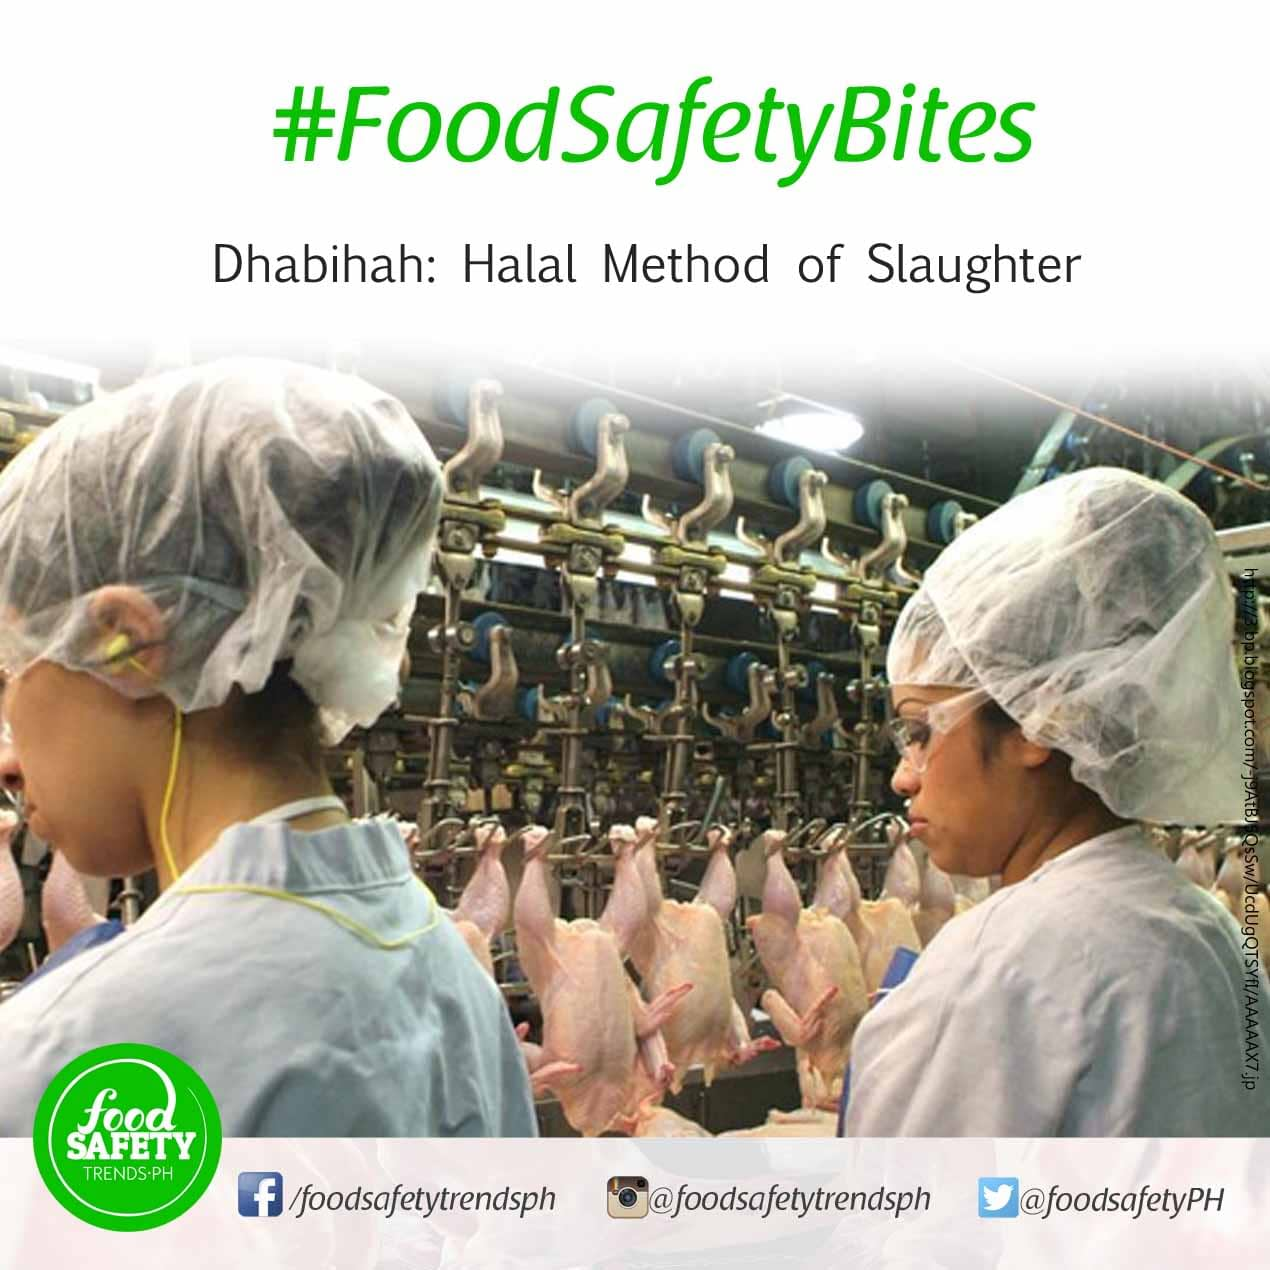 Halal_Food_Safety_HalalFood_HalalCertified_HalalPhilippines_Glenwood_Technologies_Food_Safety_Philippines_Food_Safety_Trends_Magazine_Halal_Slaughter_Food_Safety_Halal_Certification_Dhabihah_